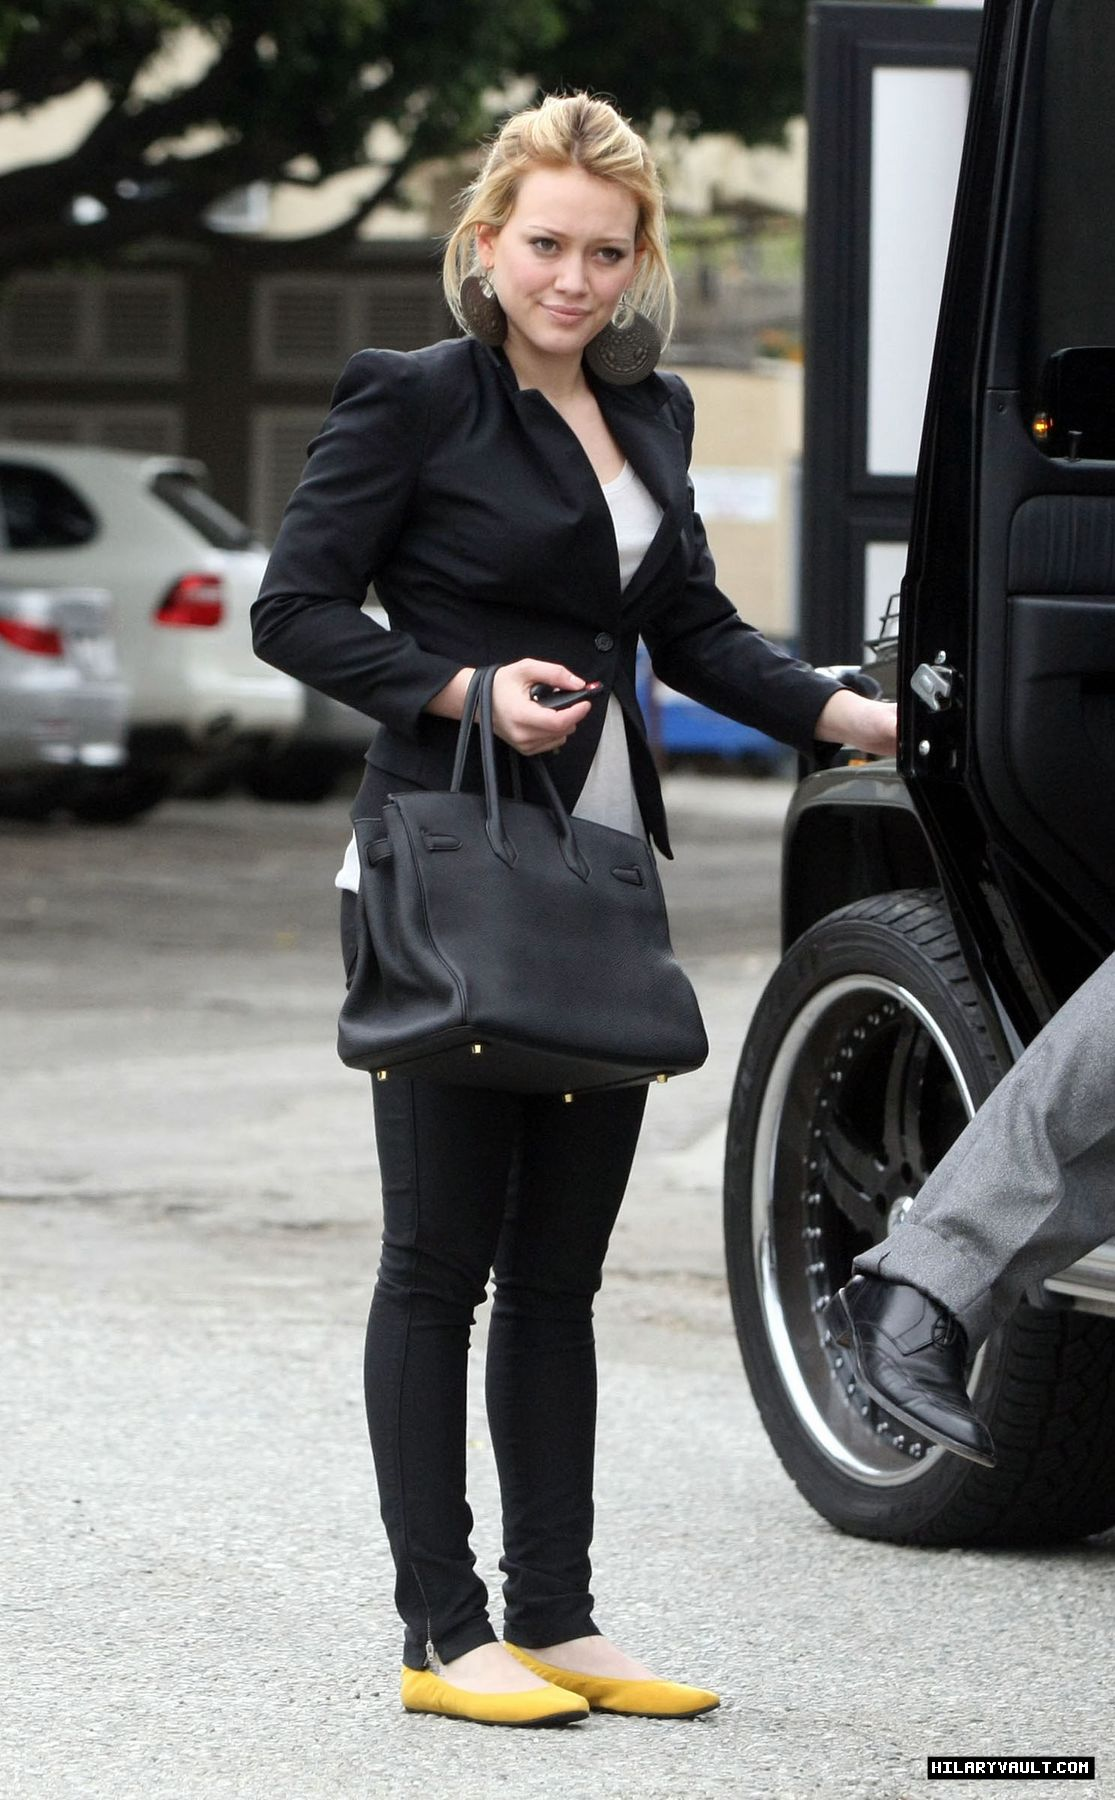 prenses-style: Hilary Duff Style 2